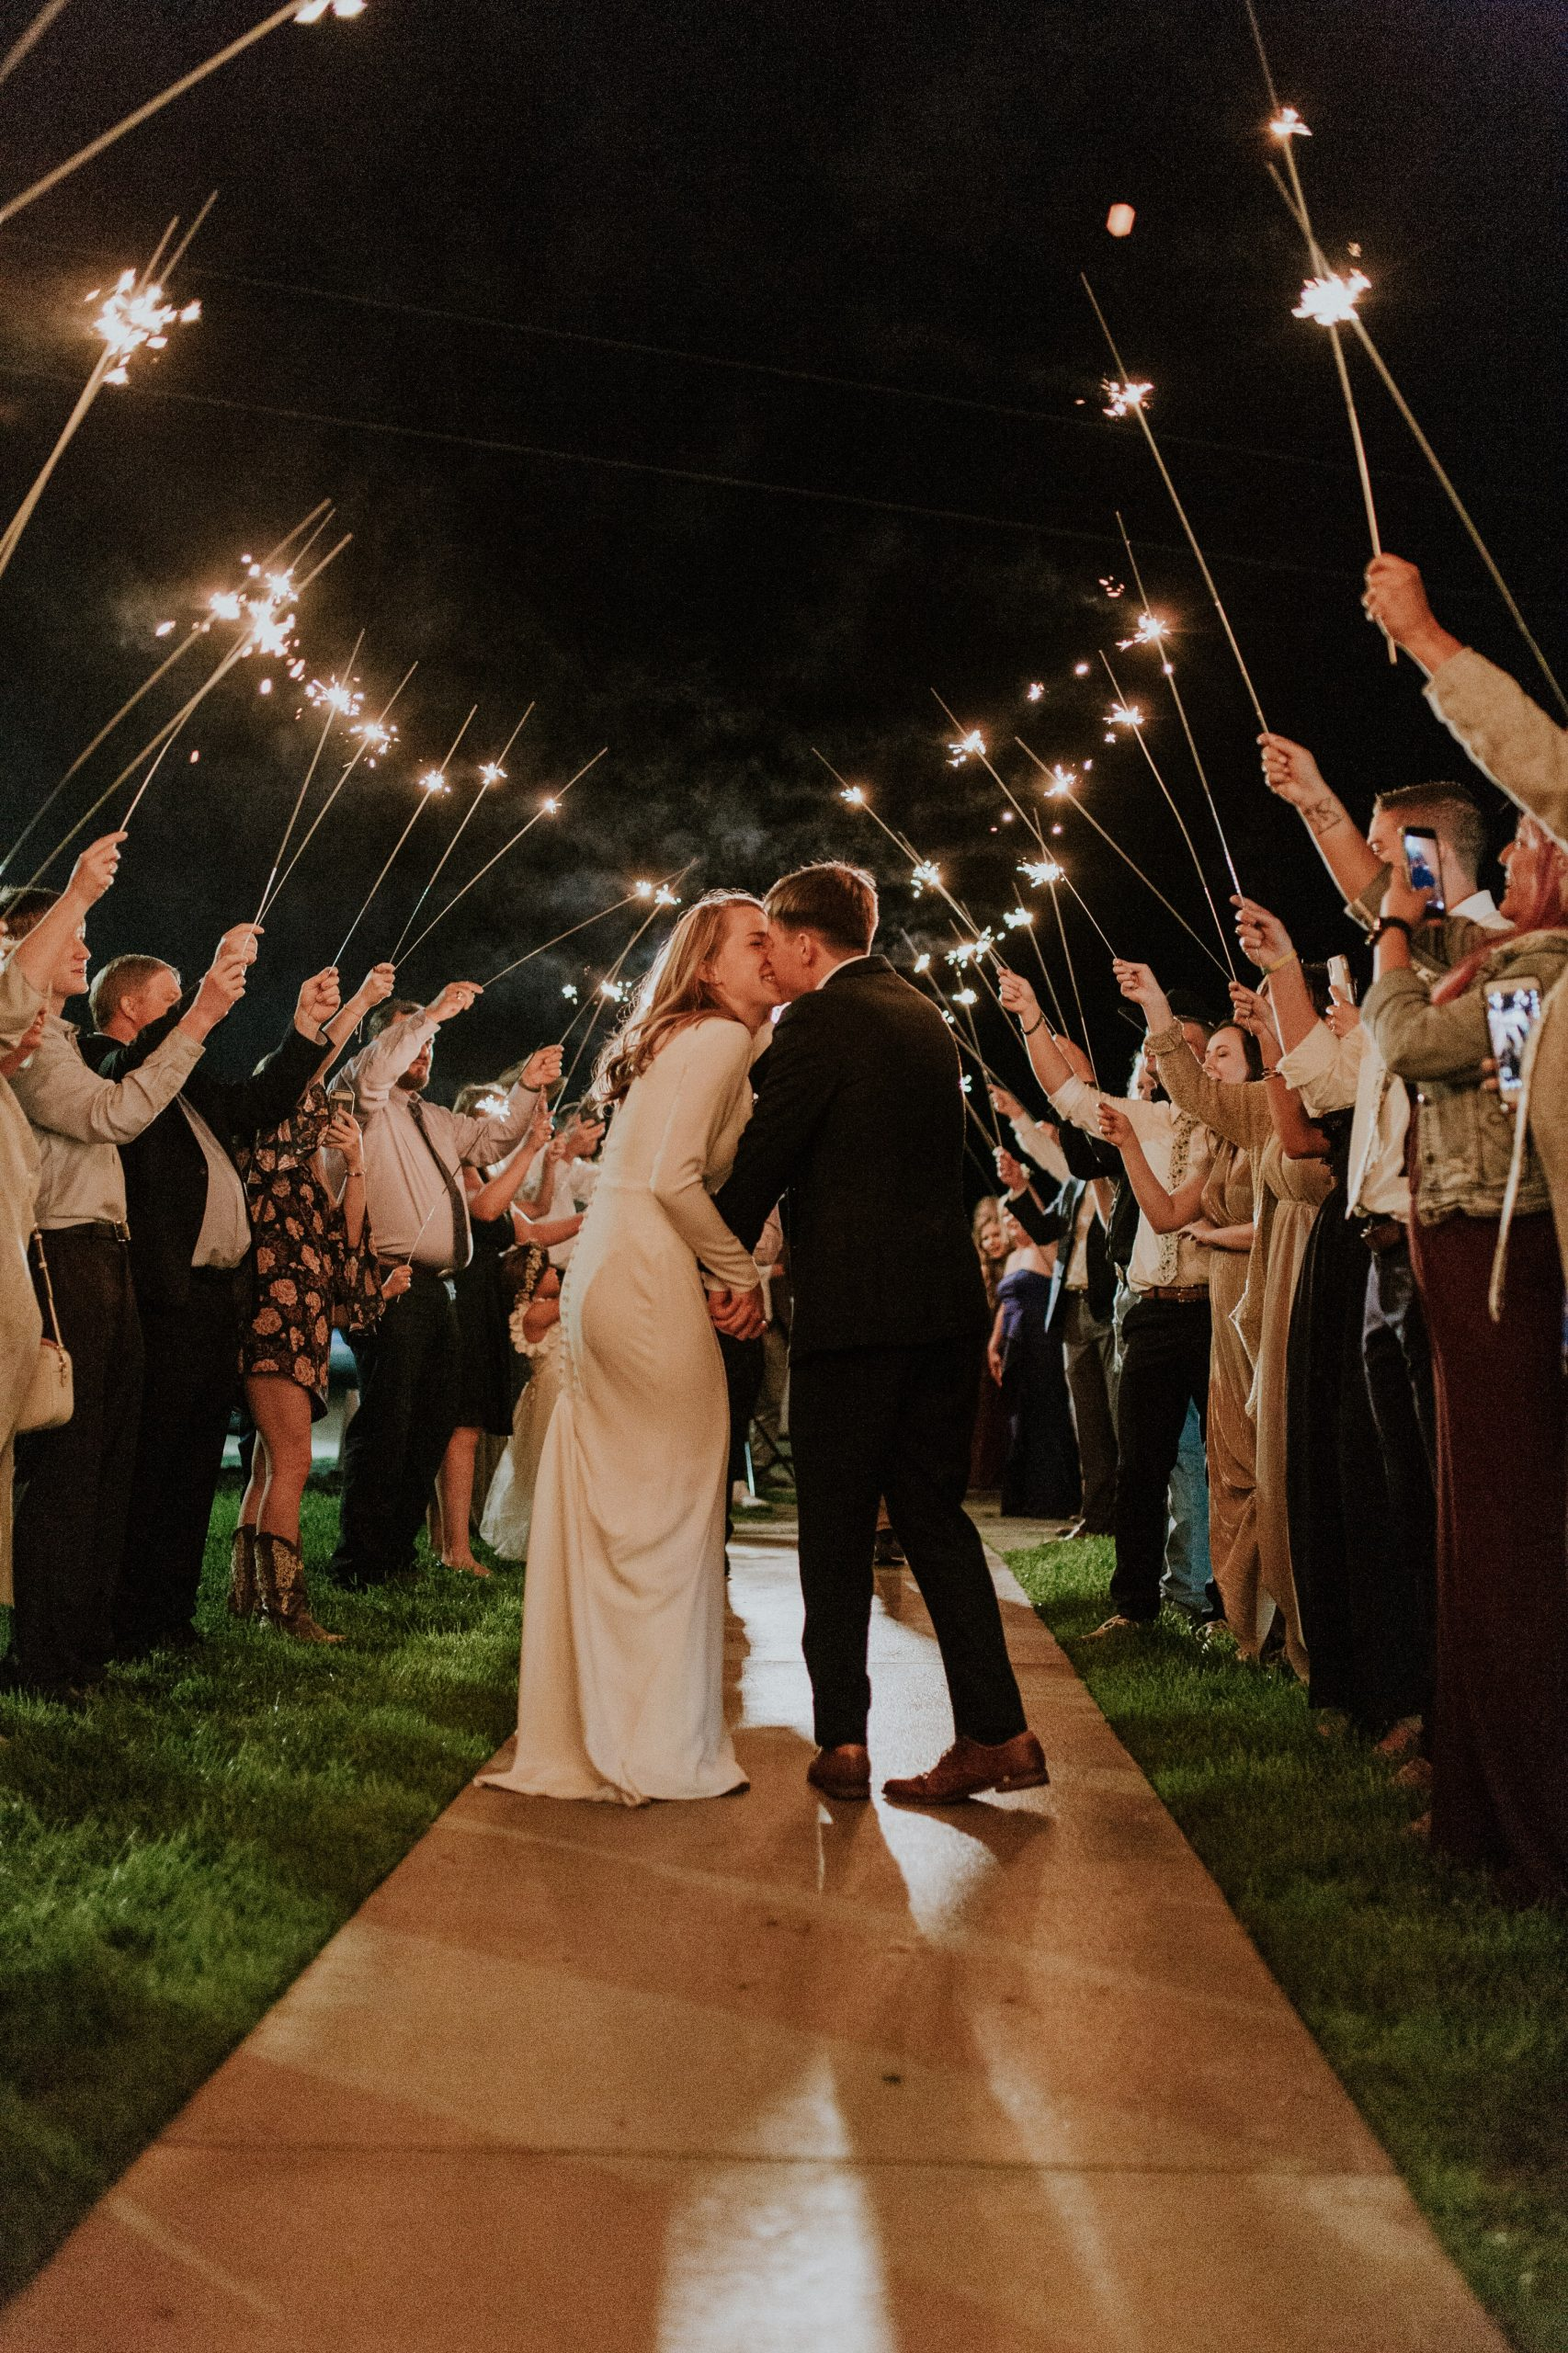 10 REASONS WHY FRIDAY WEDDINGS ARE THE BEST WEDDINGS